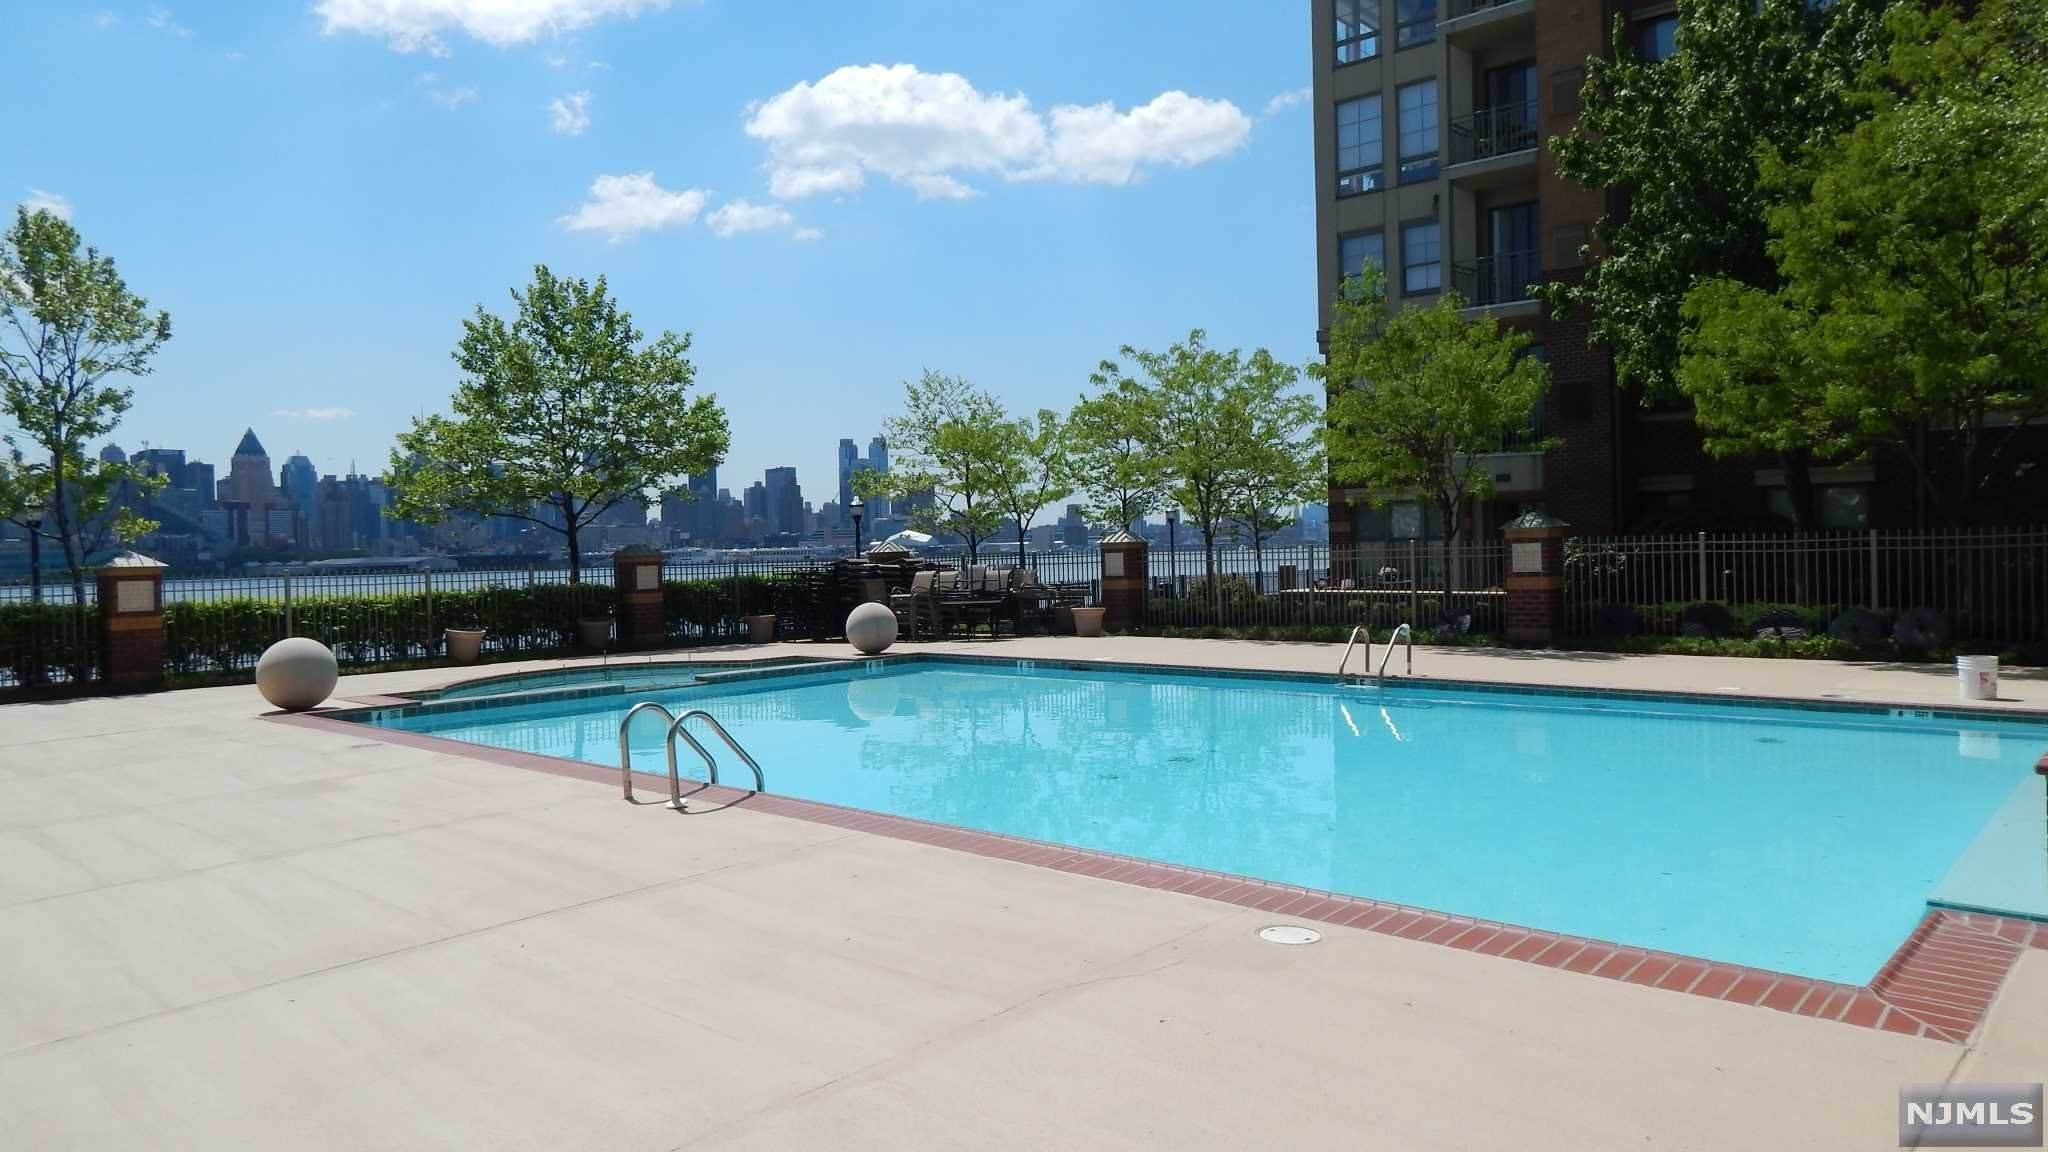 24. Condominium for Sale at 24 AVENUEAT PORT IMPERIAL #322 West New York, New Jersey, 07093 United States